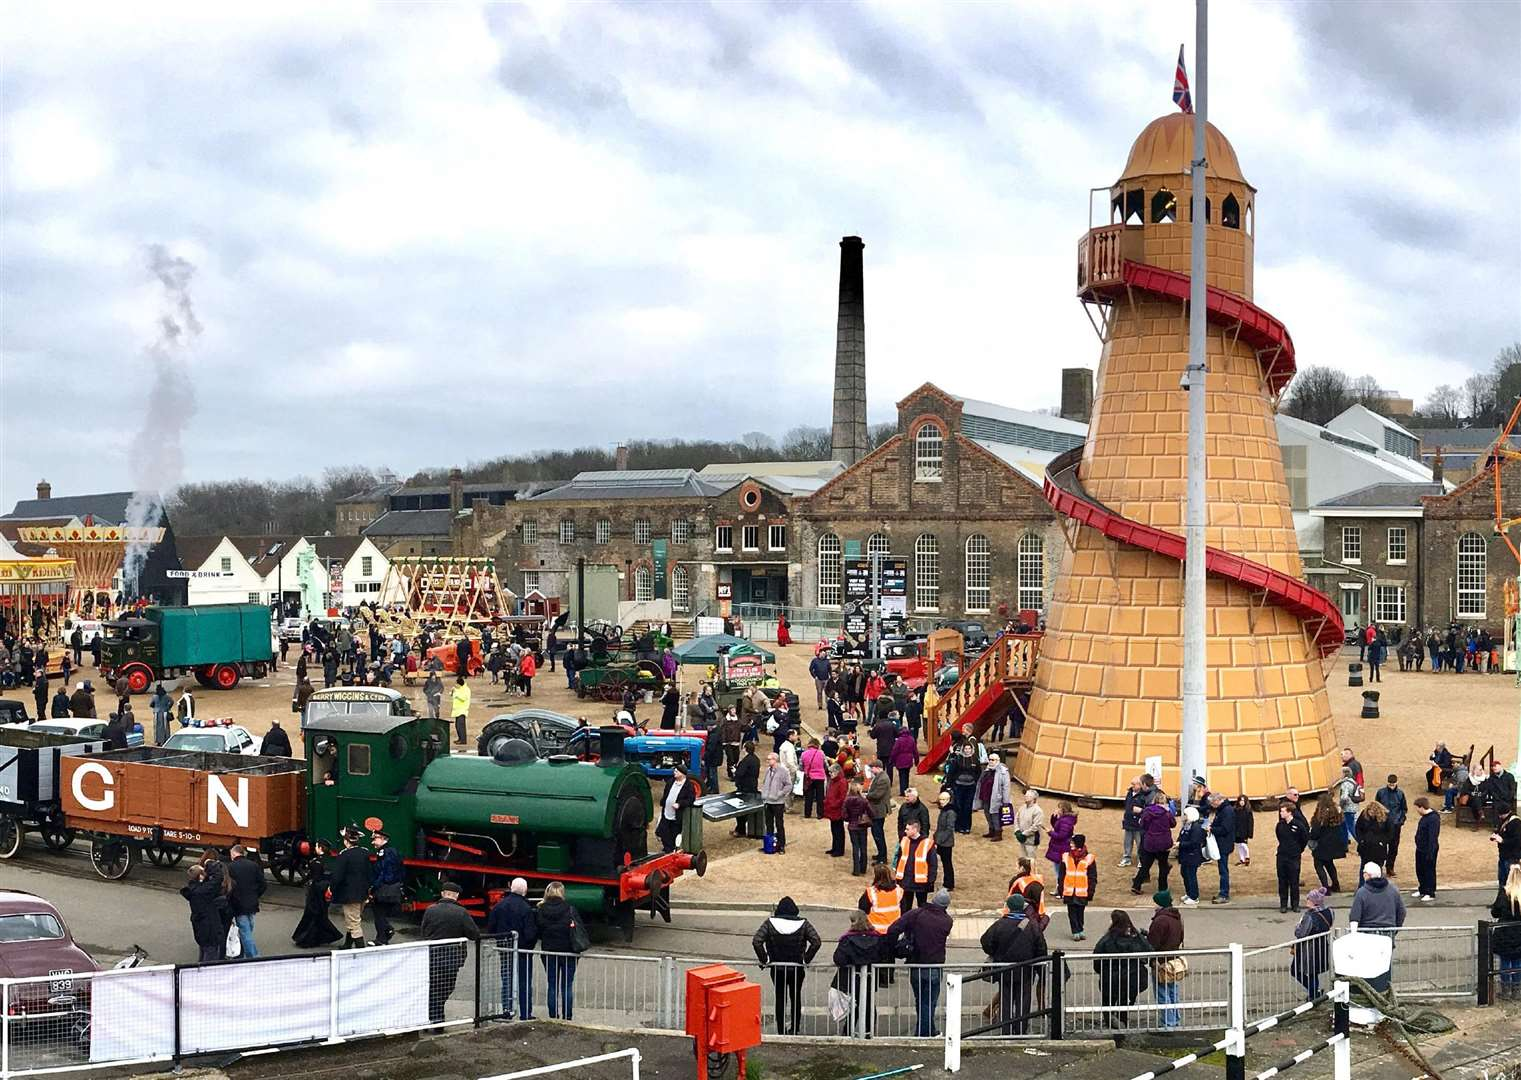 The Festival of Steam and Transport will be back at the dockyard this Easter.